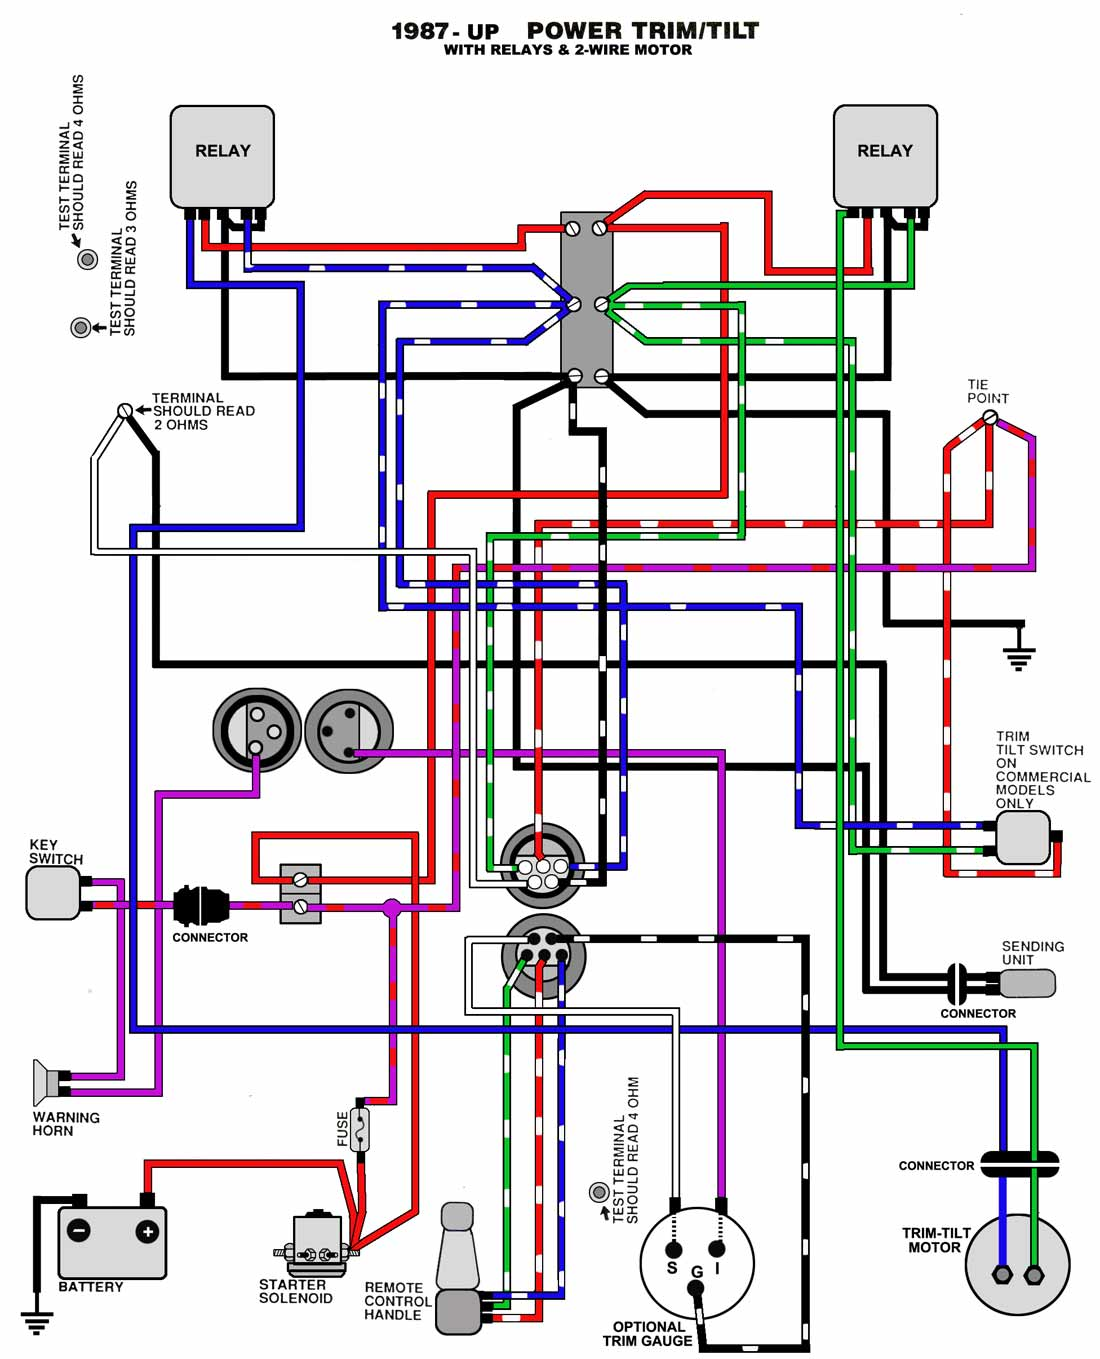 boat wiring diagram html with 3em22 Johnson Nnn Nnn Nnnnmodel Power Trim Will Lower on D5353f5b6dd93349 Ranch House Open Floor Plans Open Concept Ranch together with 3em22 Johnson Nnn Nnn Nnnnmodel Power Trim Will Lower likewise Lets Talk Marine Wire in addition 6z2sj Own Sylvan 2080 Mercruiser Engine Trim Just Stopped likewise ponent parts drawings.